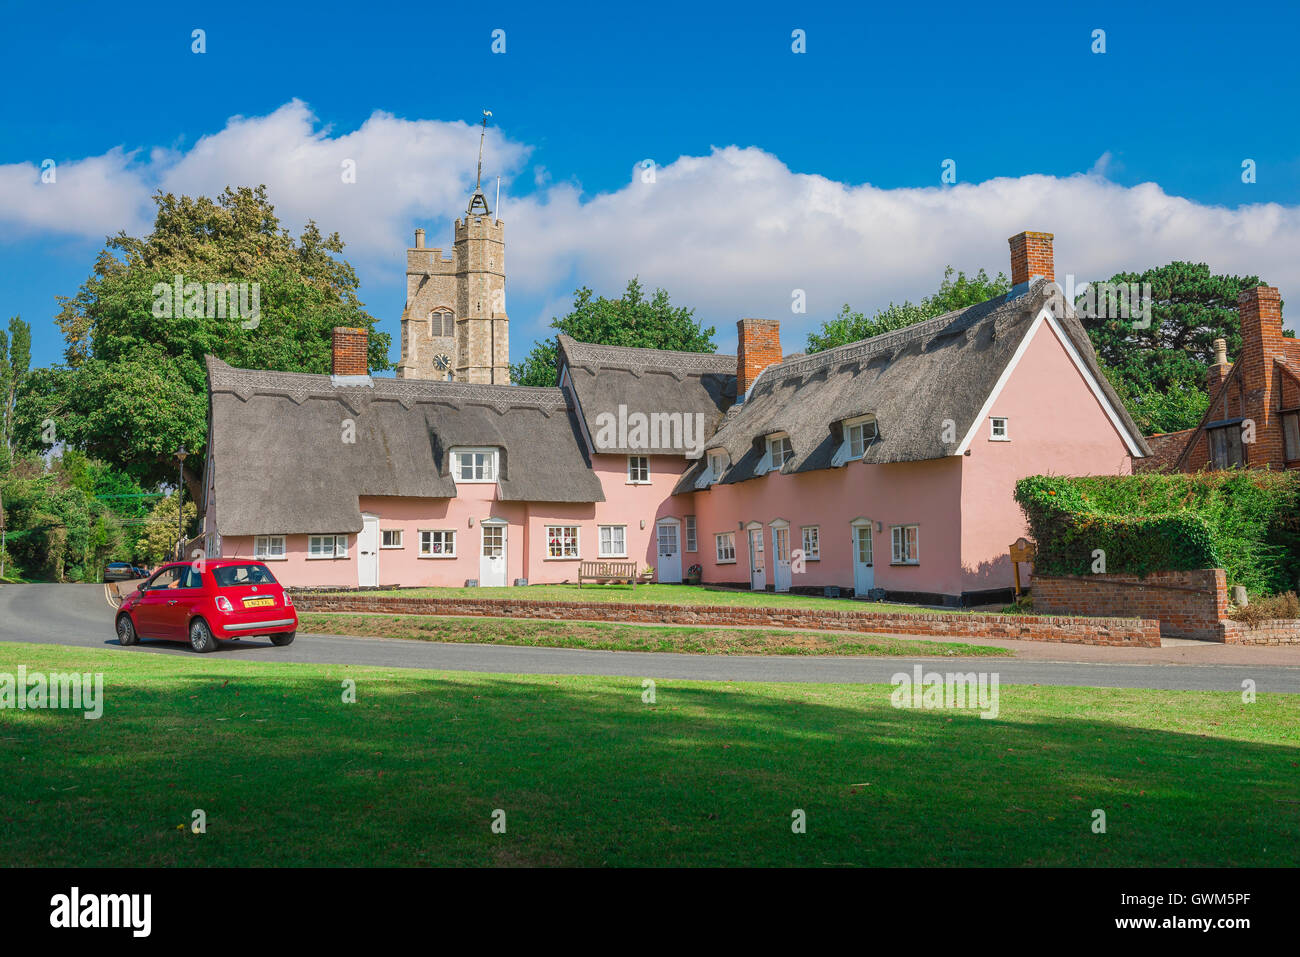 England village green, the village green in Cavendish, Suffolk, with the medieval church and pink cottages England, - Stock Image